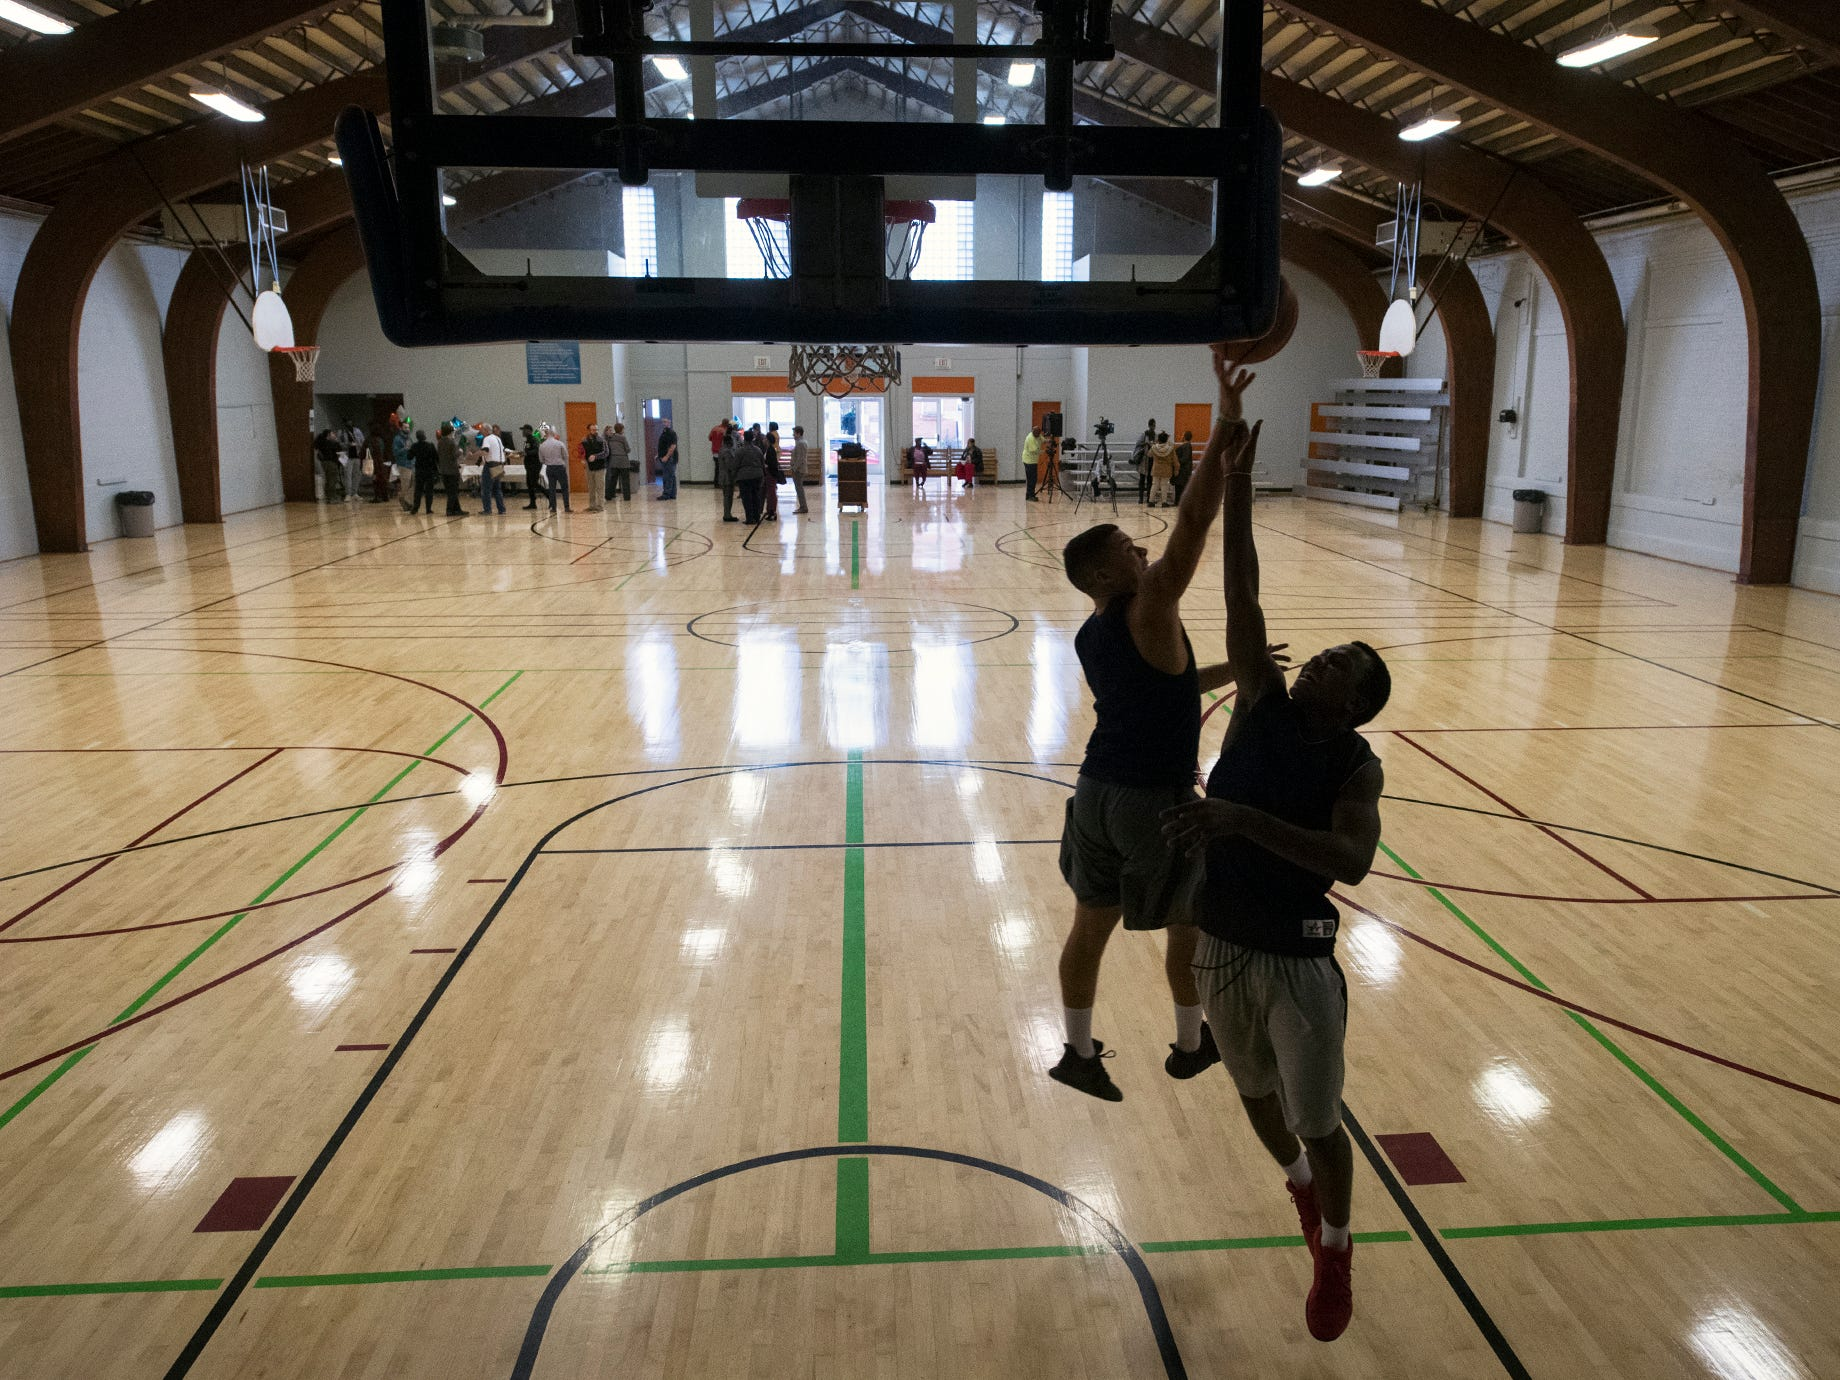 Open Gym Season at Voni Grimes Gym began this week alongside a ceremony to mark the conclusion of the first phase of renovations to the century-old structure on East College Avenue in York. A new floor surface and painted interior walls were part of the renovation.